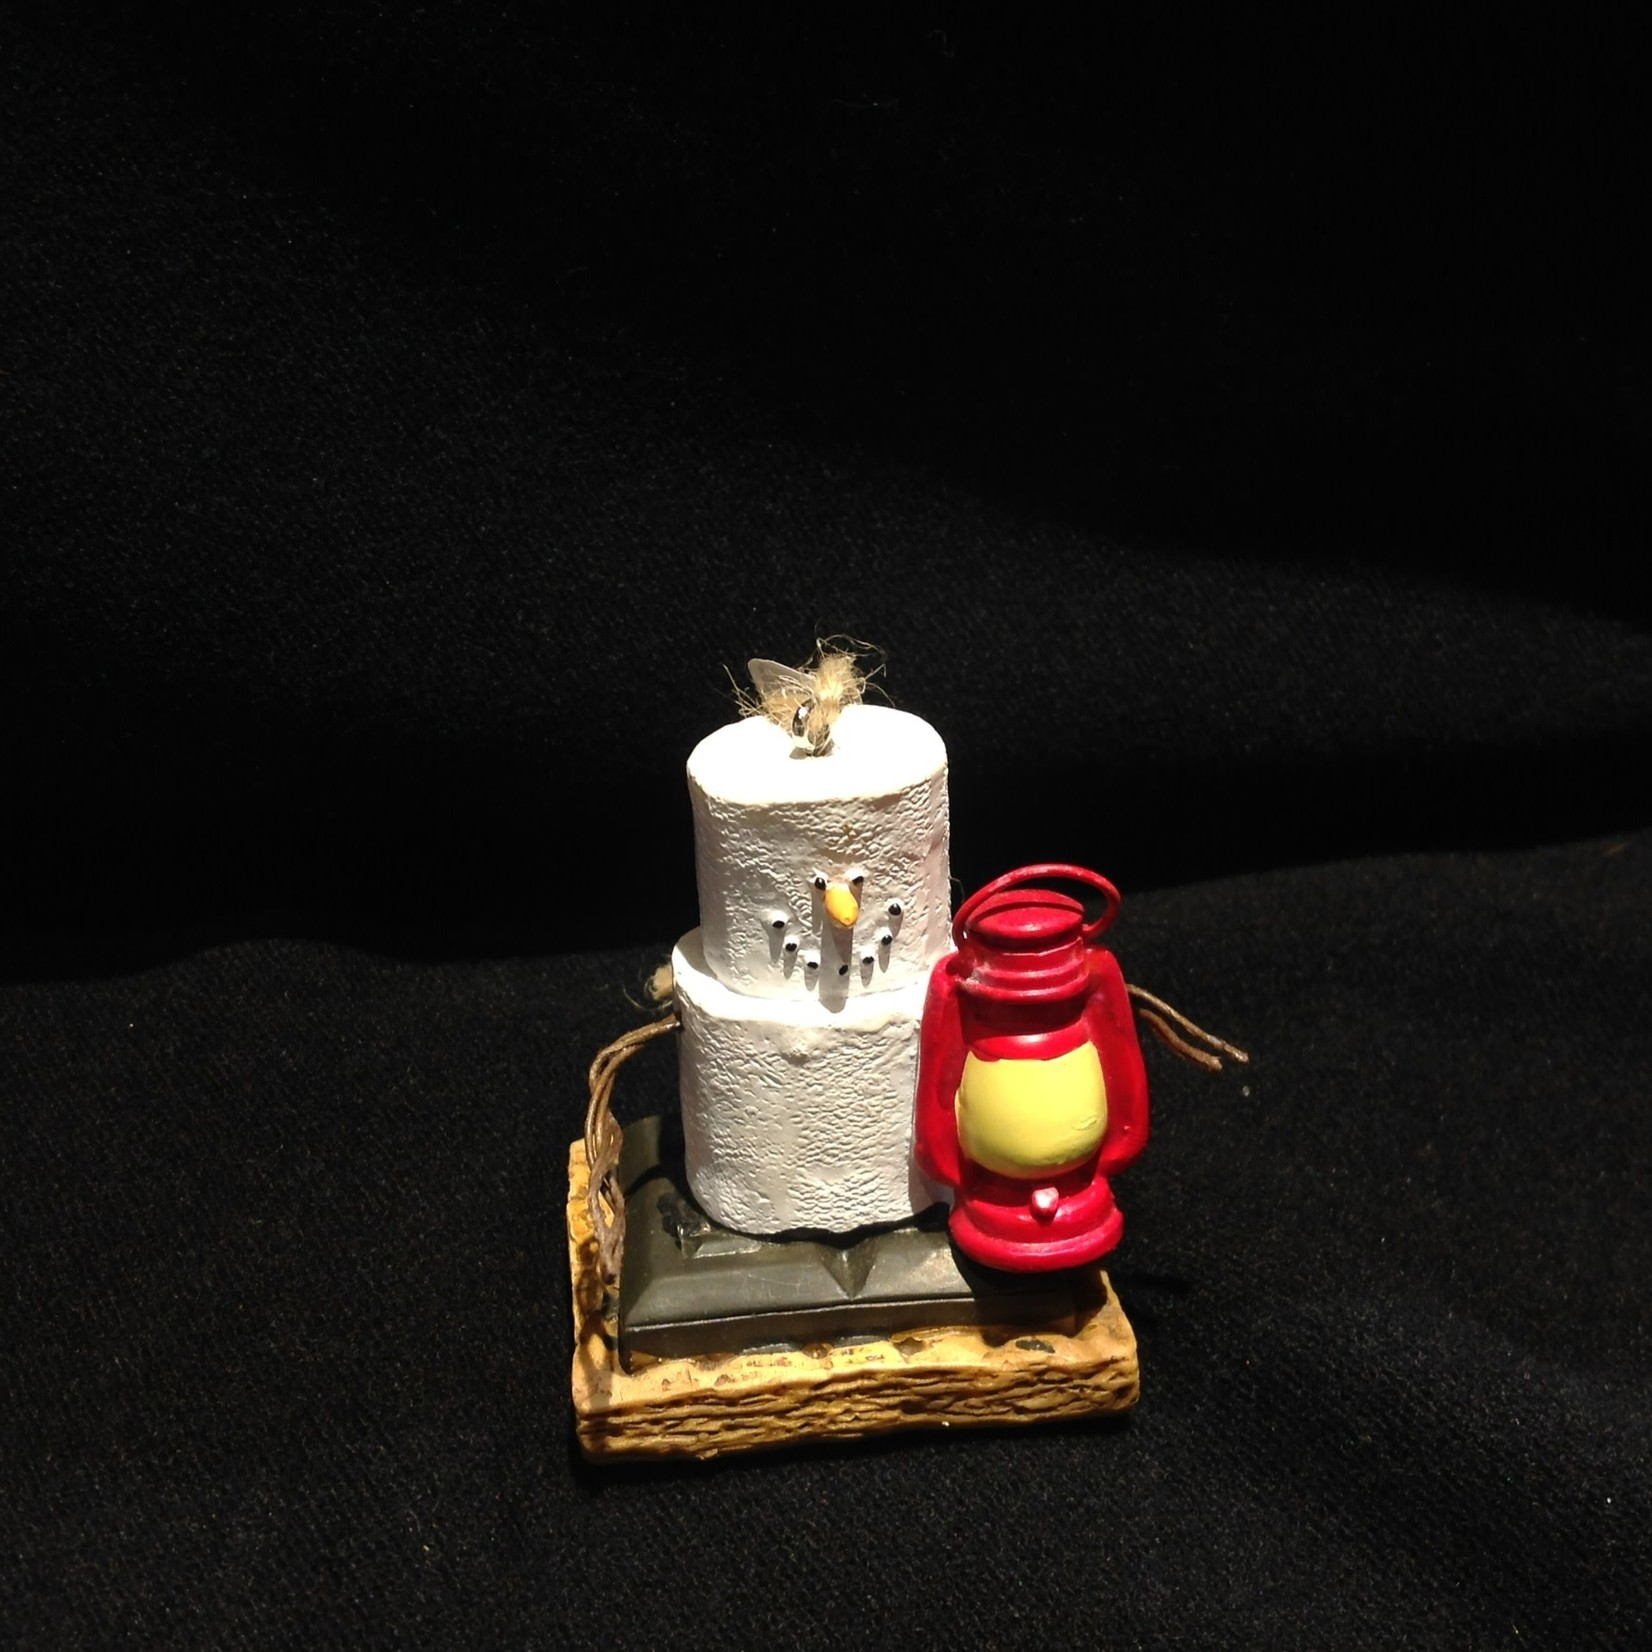 **S'More with Lantern